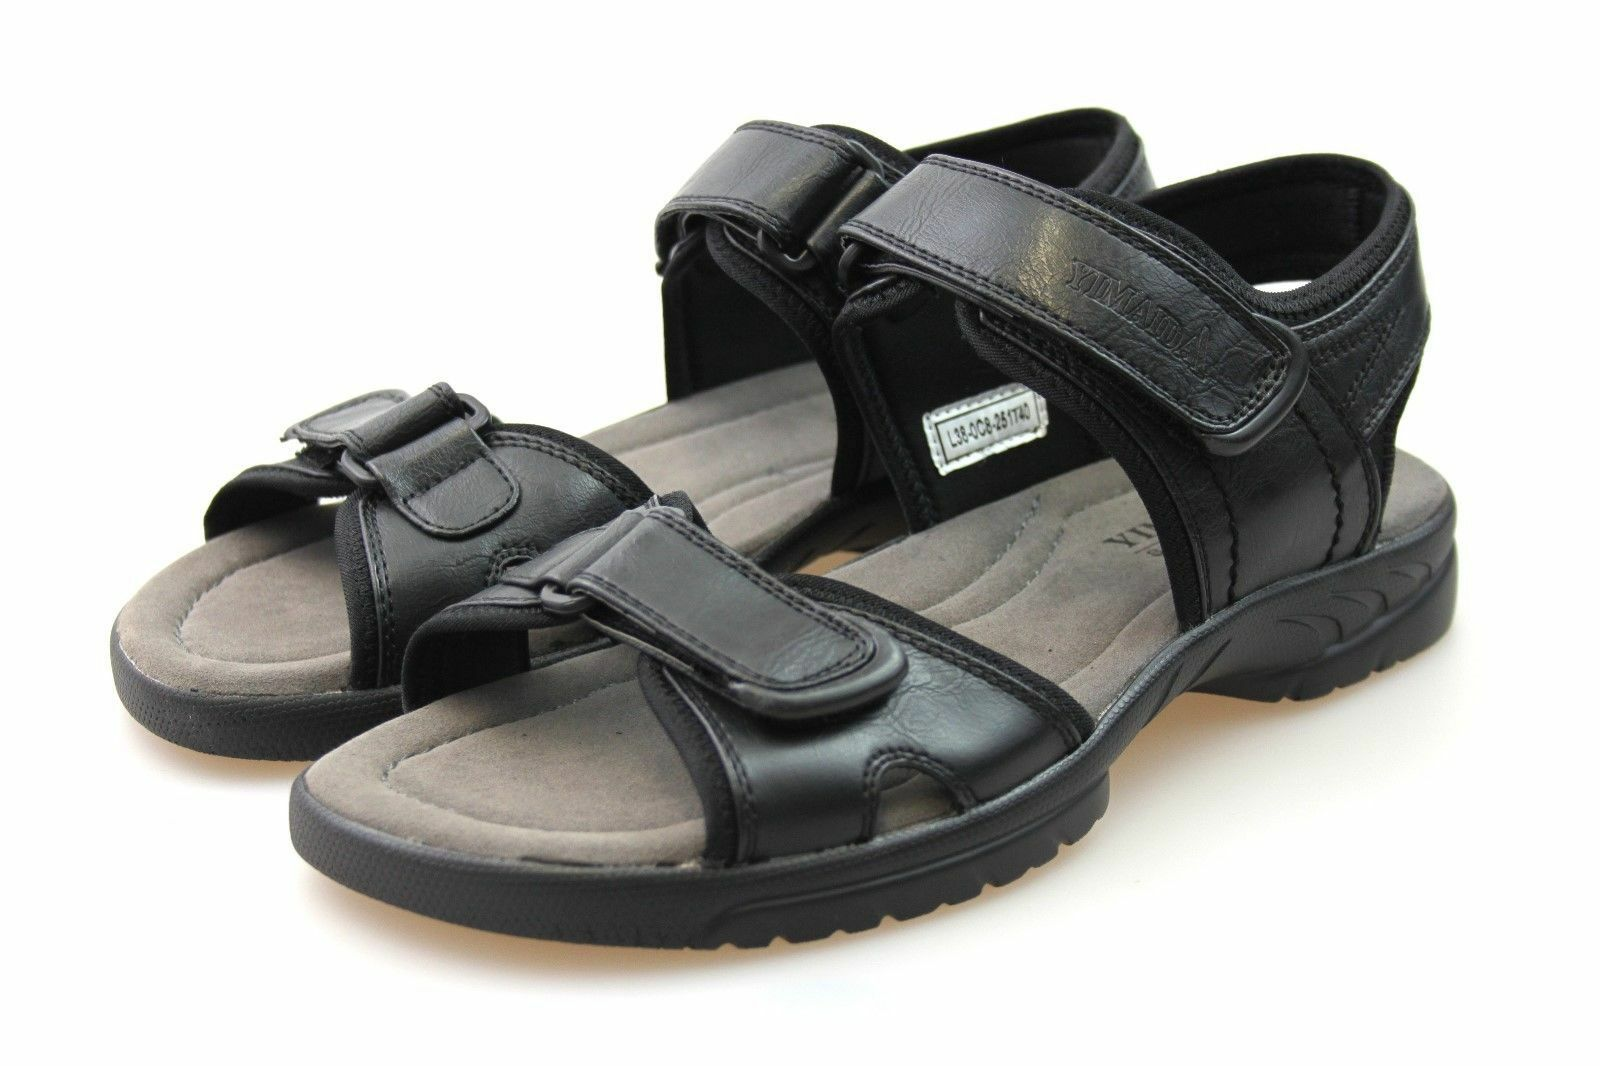 13bfd63ccb43 Mens Black Black Black Leather Look Walking Summer Open Beach Sandals Size  6 7 8 9 10 11 bc76b3